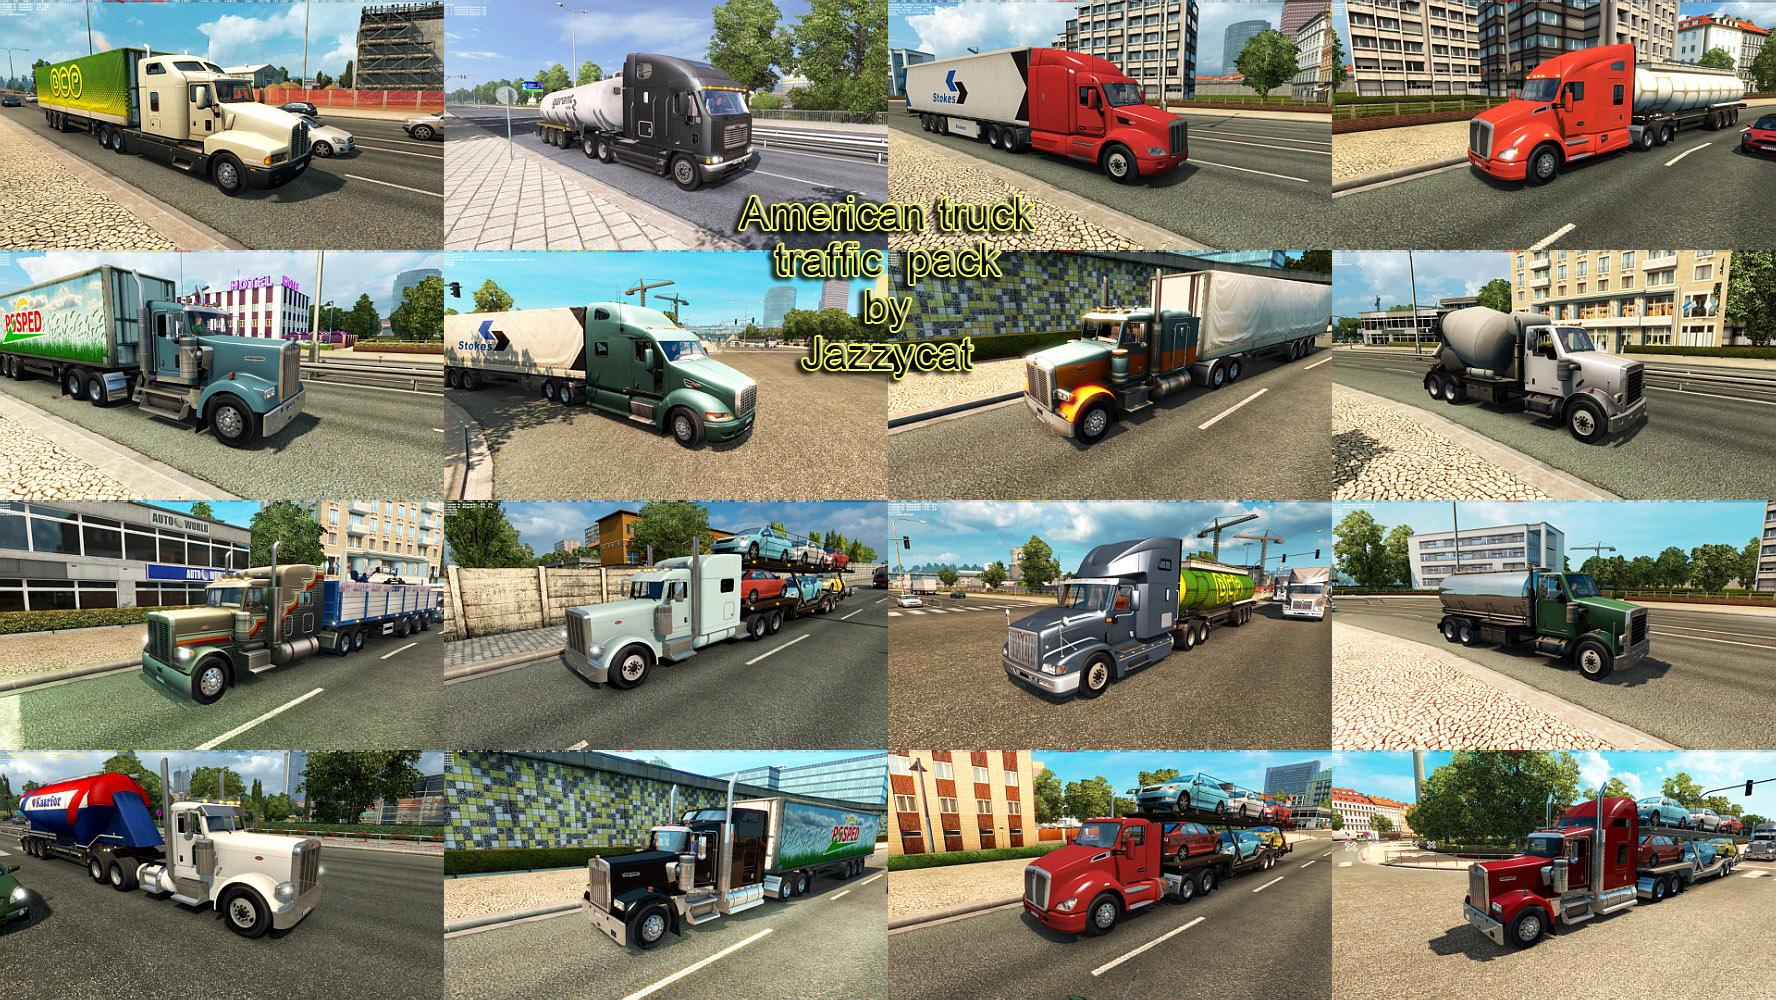 American Truck Traffic Pack by Jazzycat v1 7 ETS2 - Euro